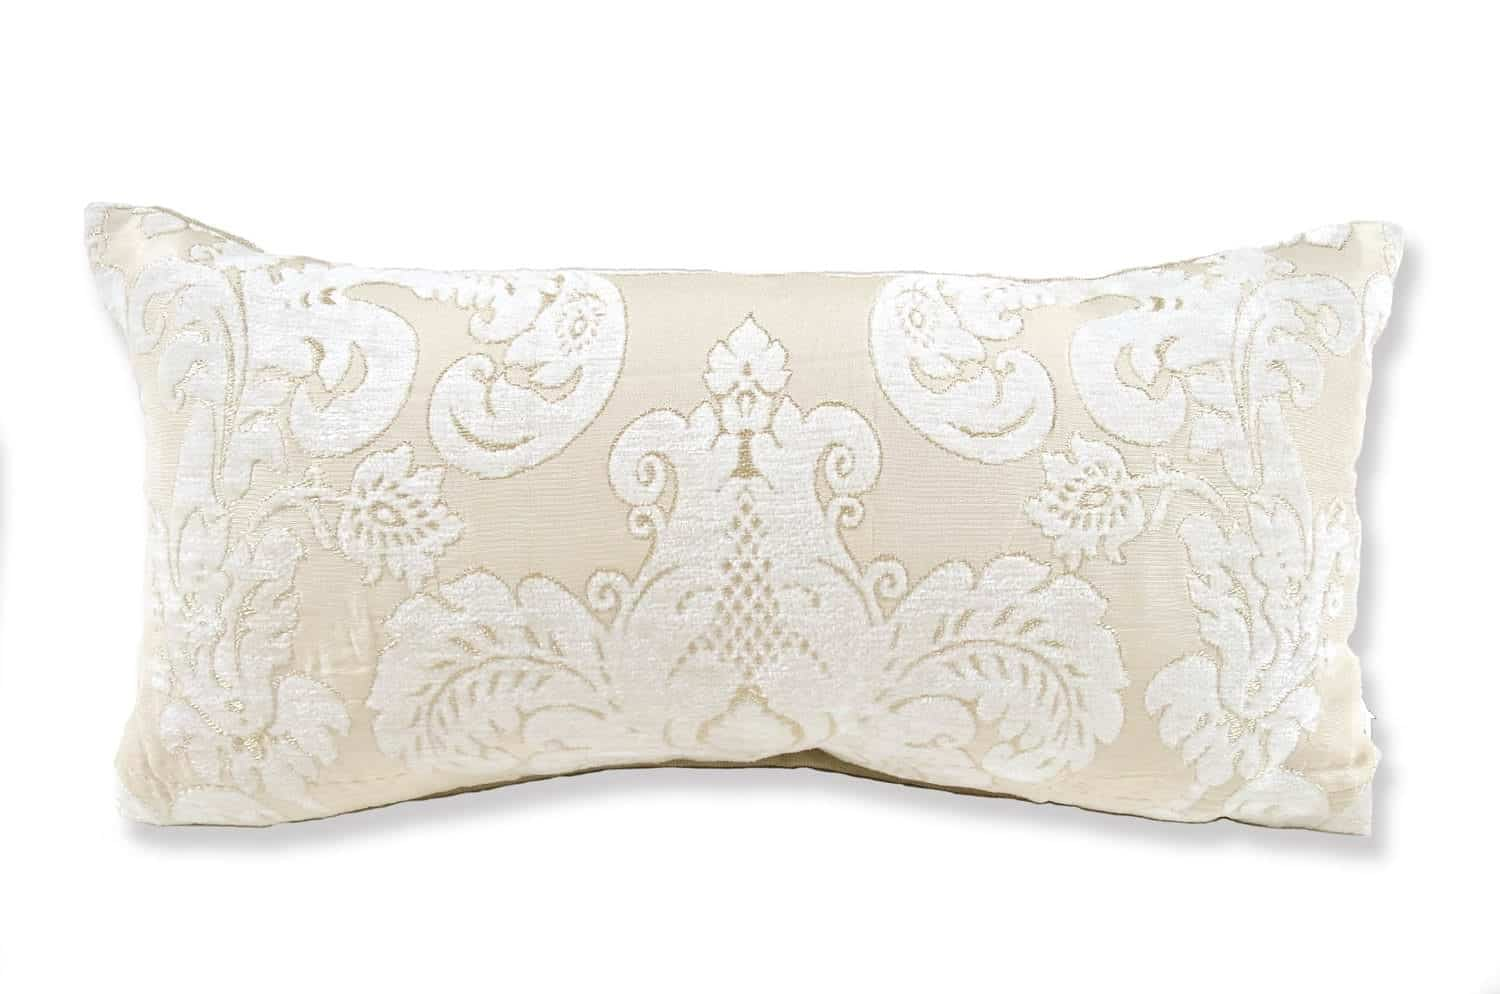 The Pearl White Damask パールホワイトダマスク柄クッション 40×20cm 中材付